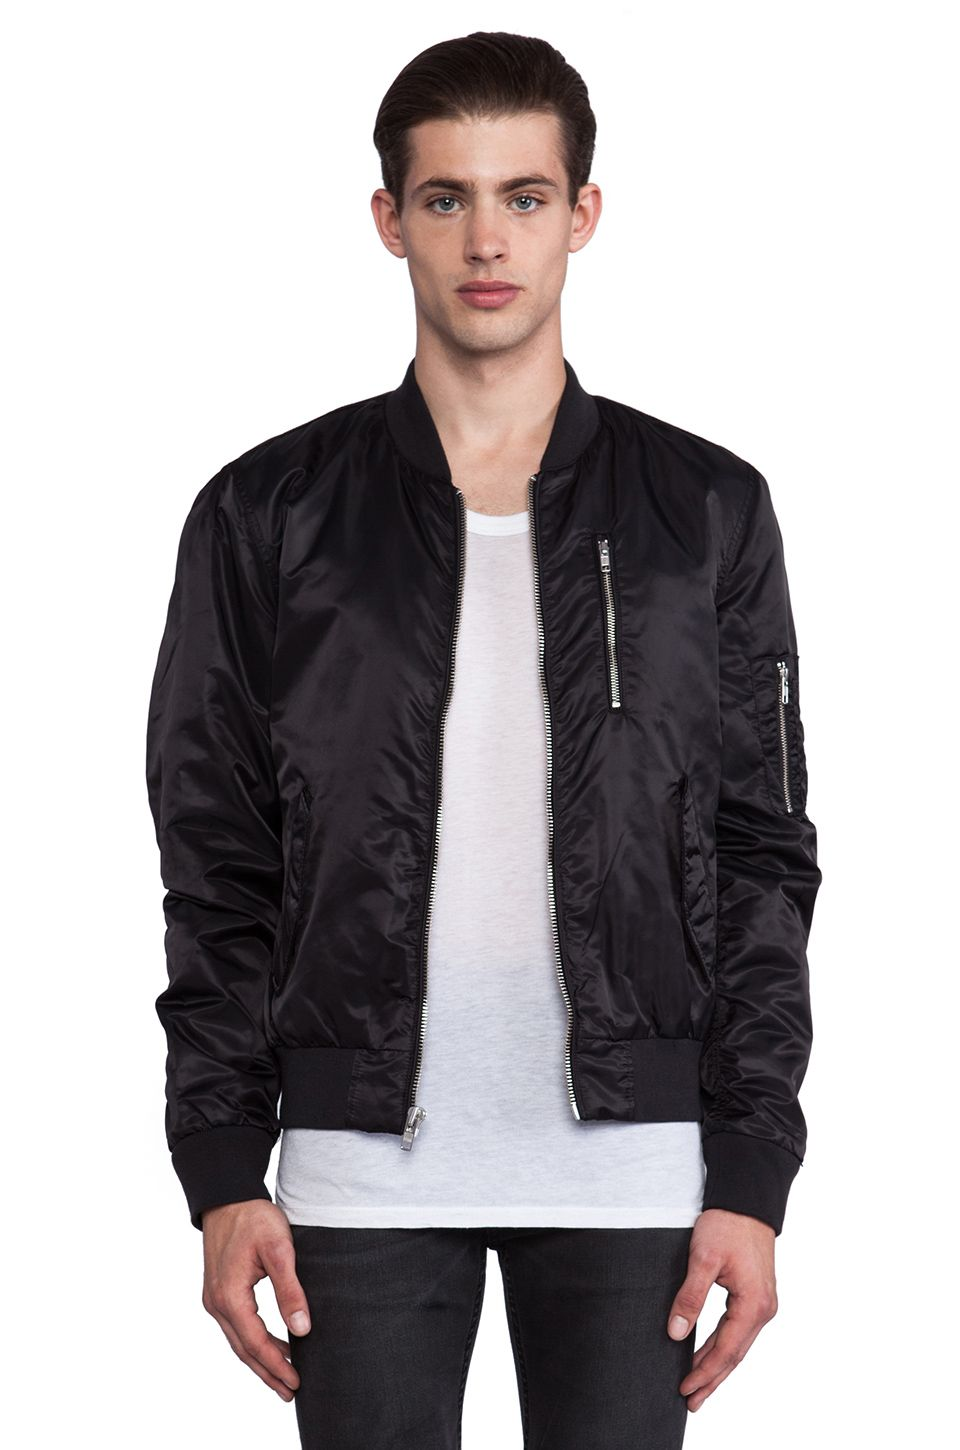 Blk Dnm Jacket 45 In Black From Revolveclothing Com Jackets Men S Leather Jacket Outerwear Jackets [ 1450 x 960 Pixel ]